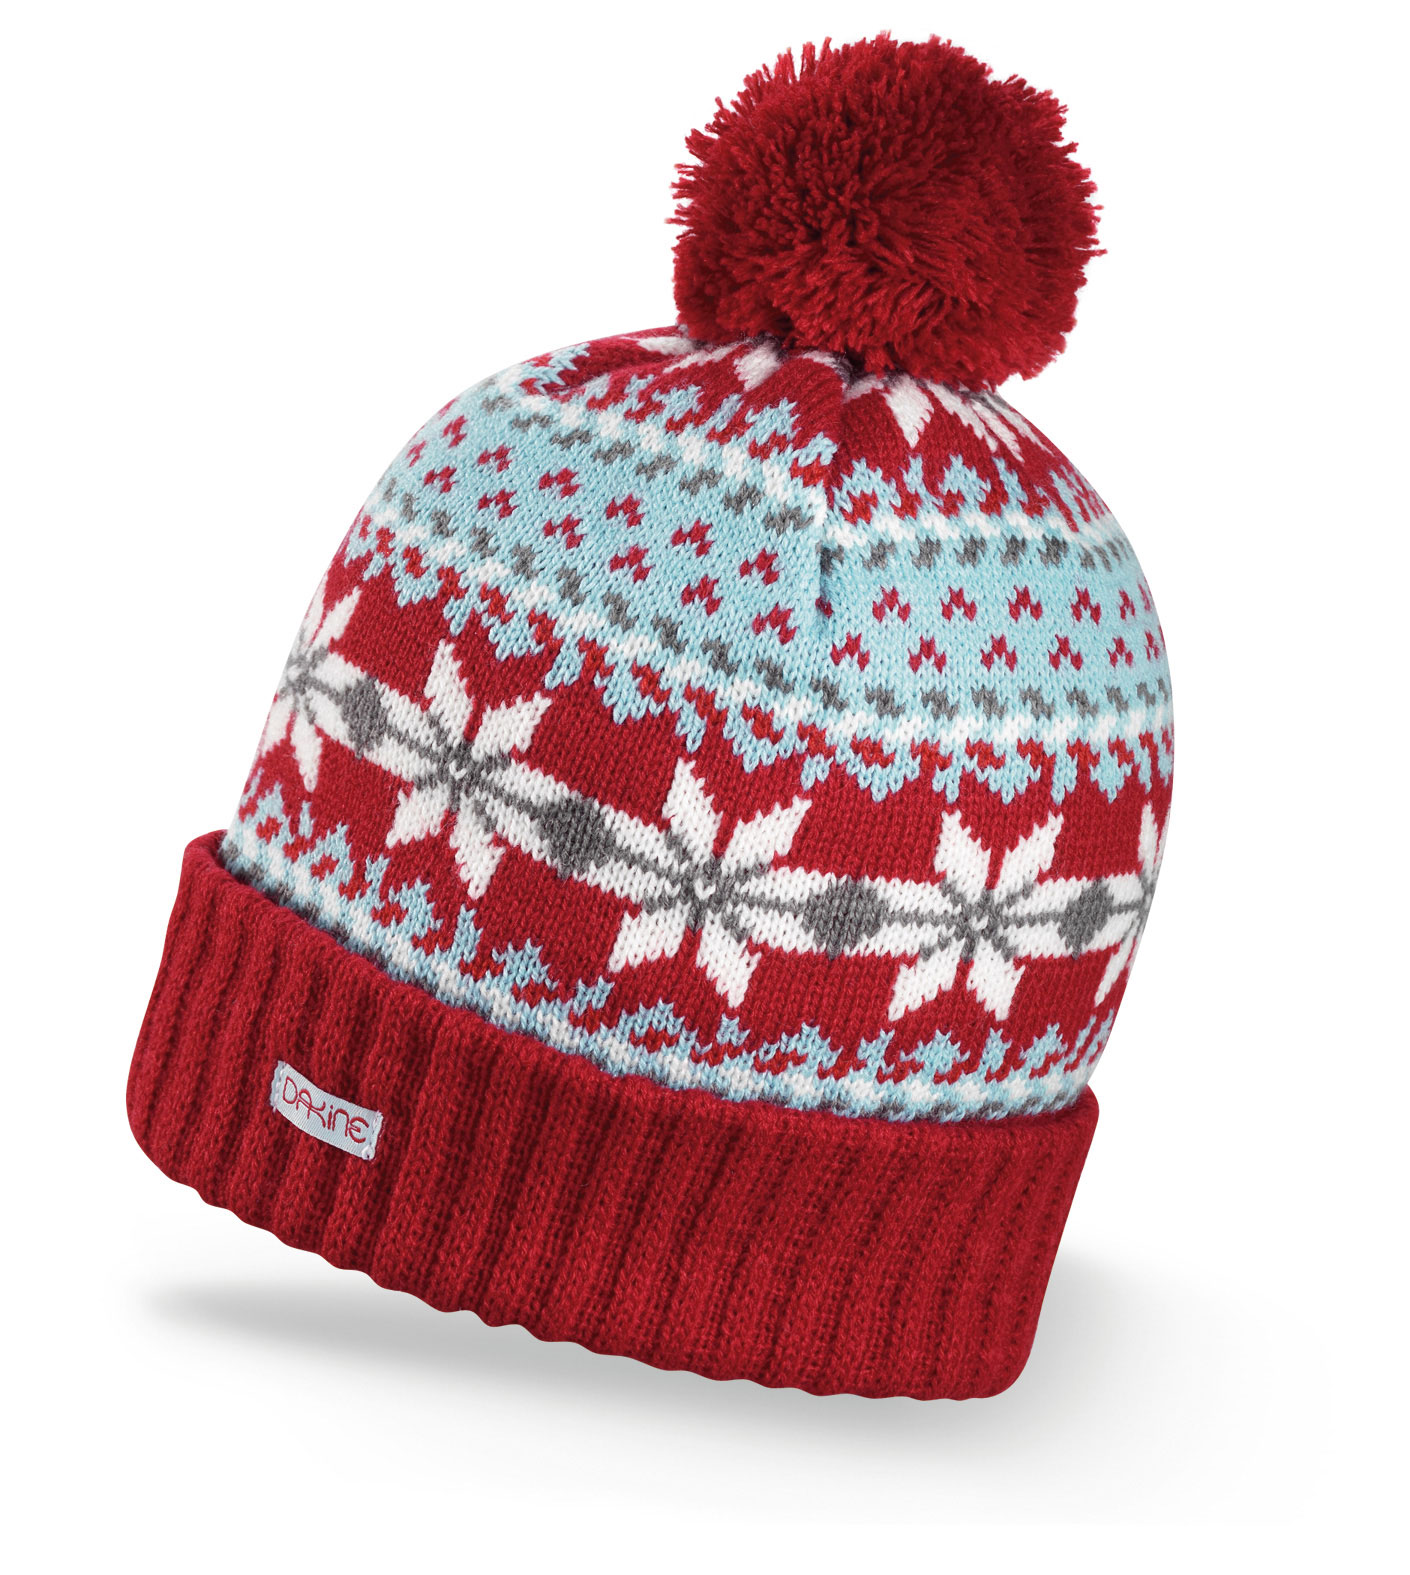 Snowboard Key Features of the Dakine Maggie Beanie: Double lined Acrylic Classic fair isle knit with ribbed cuff - $19.95